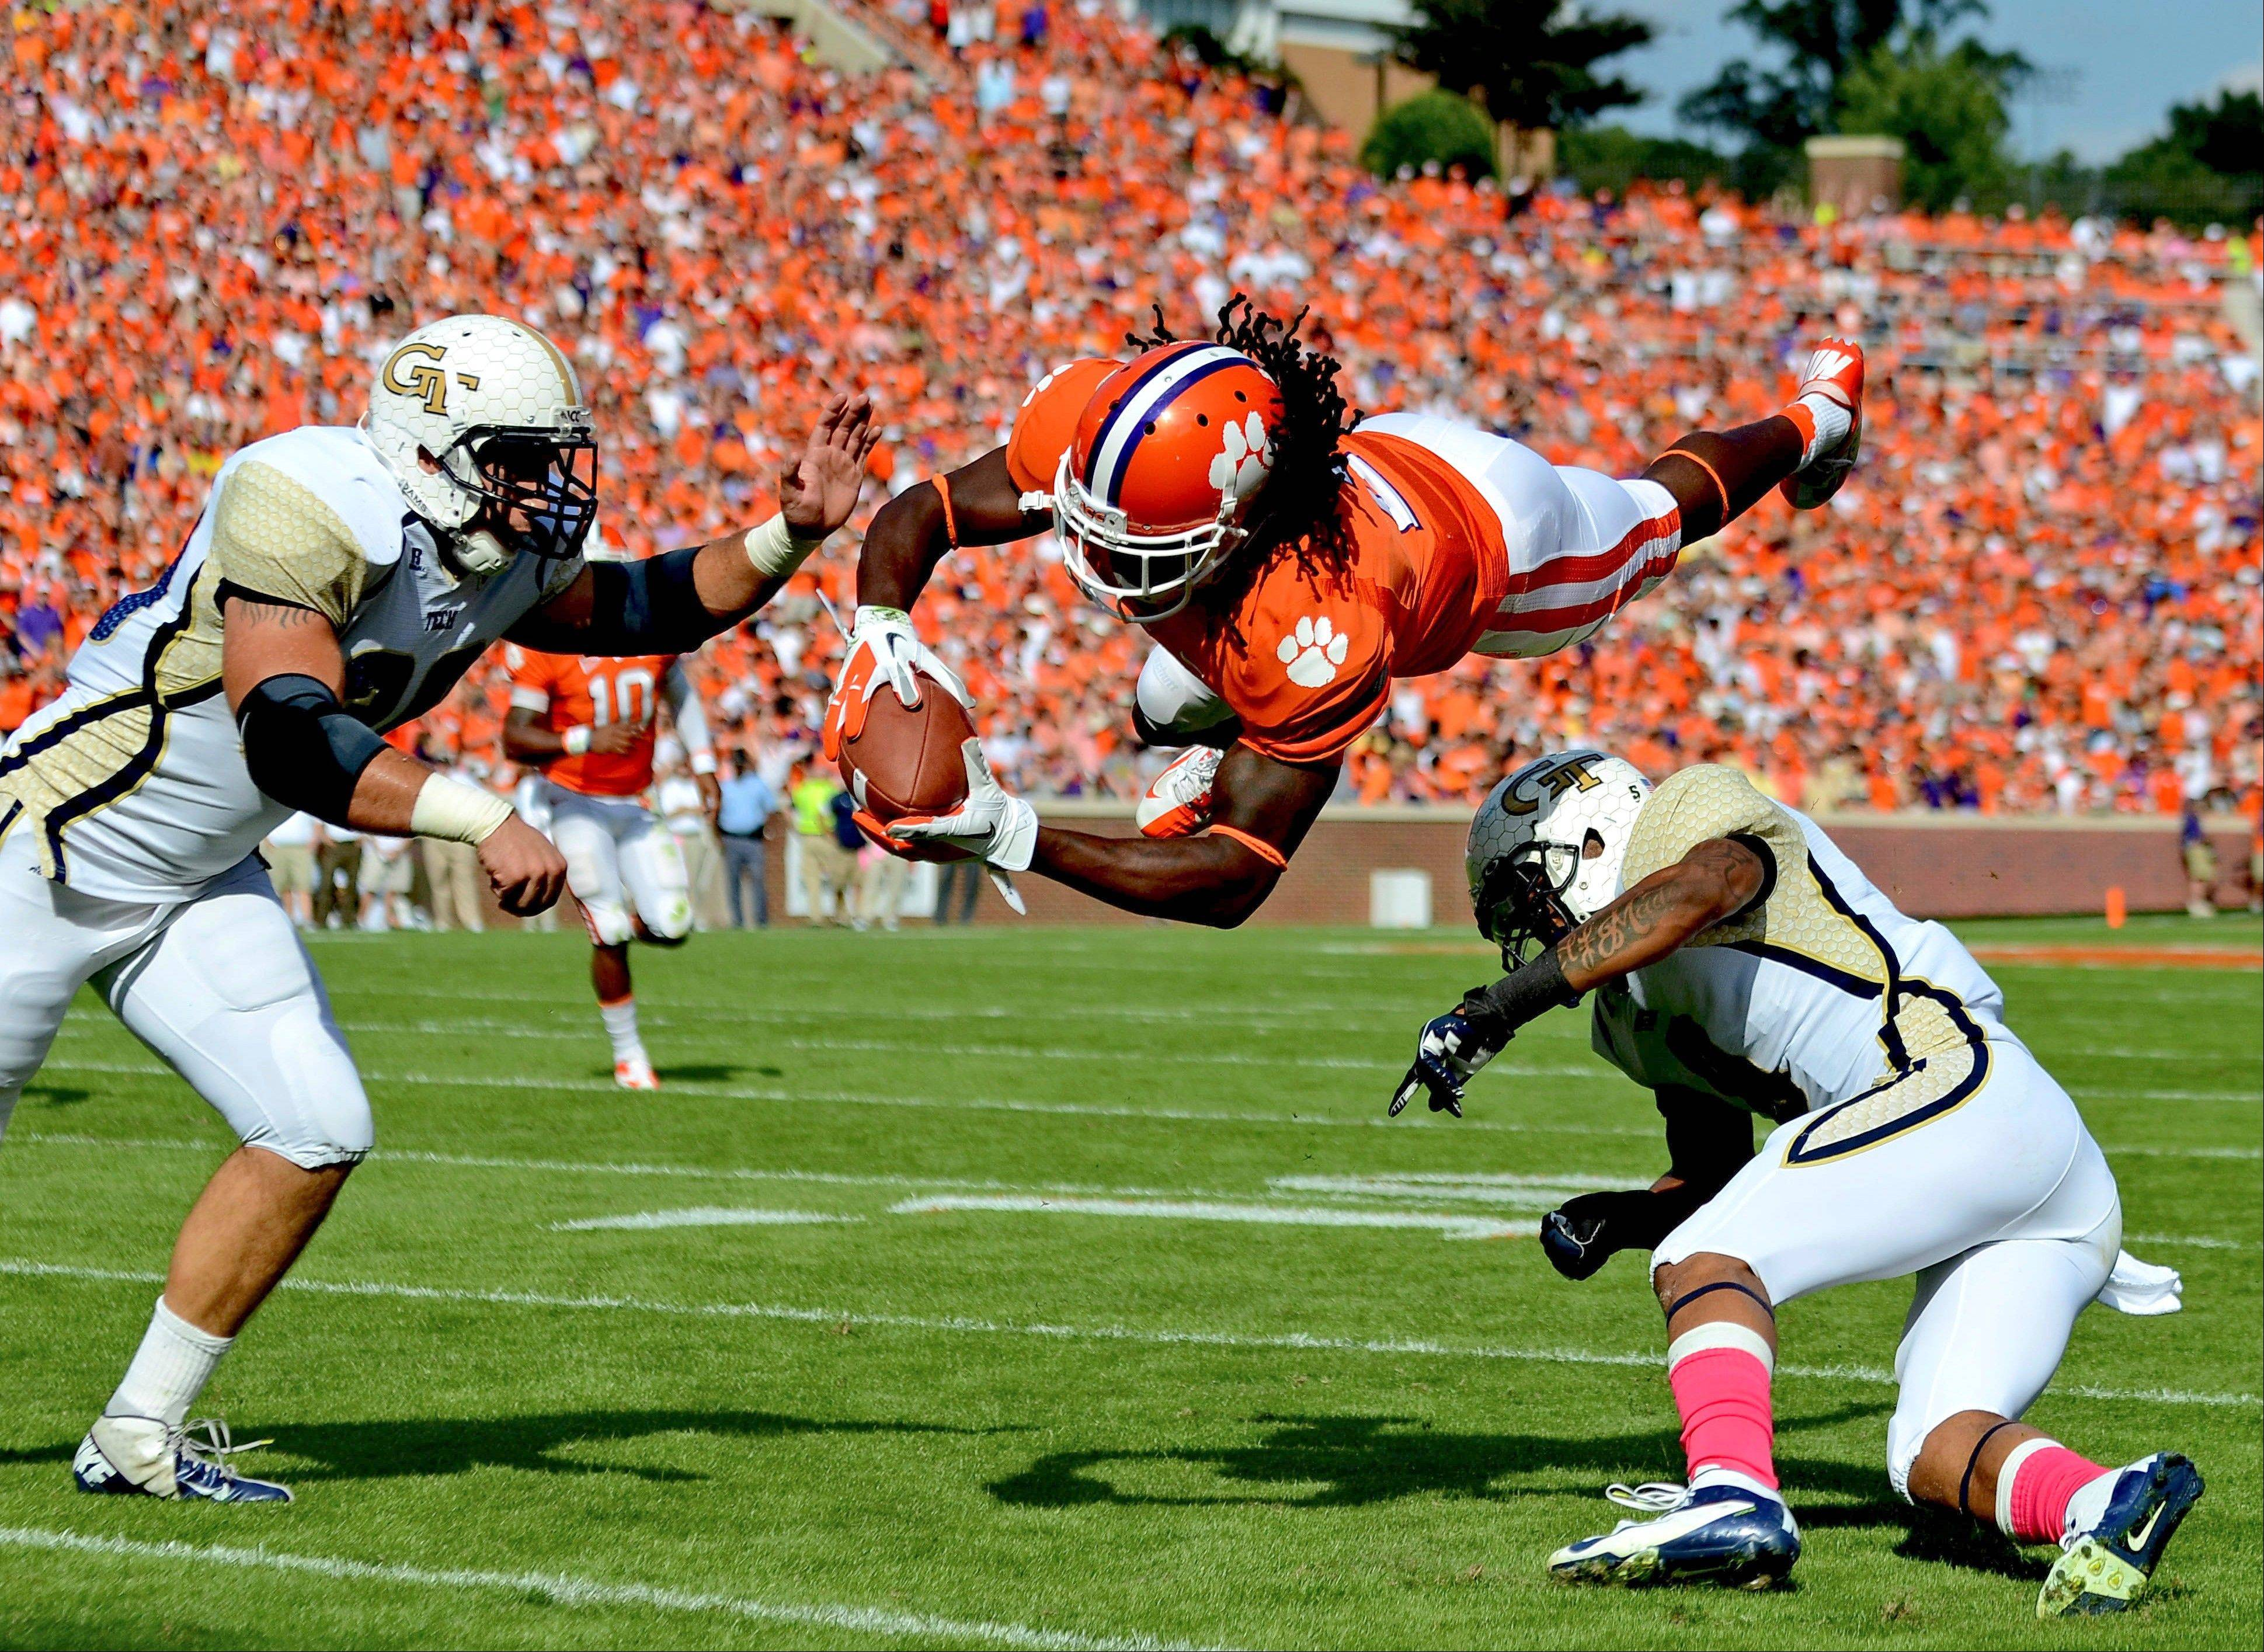 Clemson wide receiver Sammy Watkins dives between Georgia Tech defenders Daniel Drummond, left, and Louis Young to the 1-yard line during the first half Saturday at Memorial Stadium in Clemson, S.C.